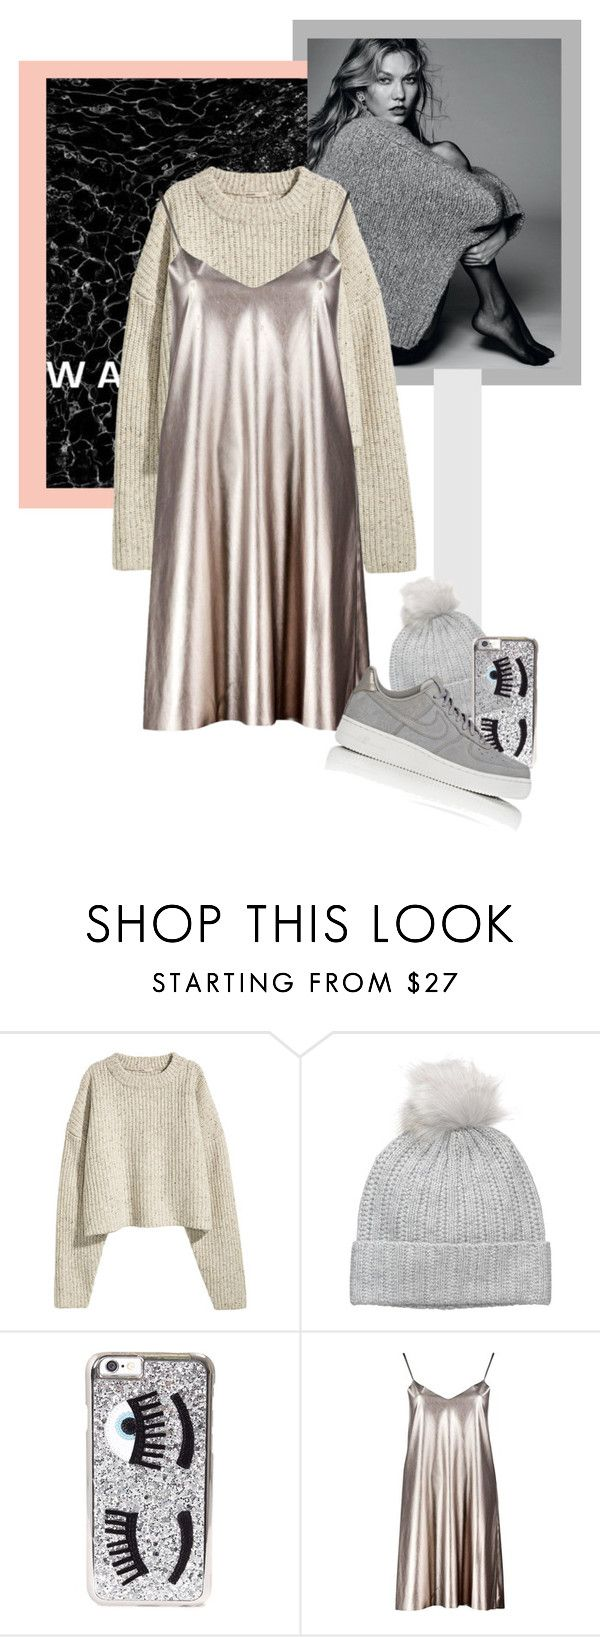 """Untitled #1993"" by katerina-rampota ❤ liked on Polyvore featuring Badgley Mischka, Chiara Ferragni, Boohoo and NIKE"